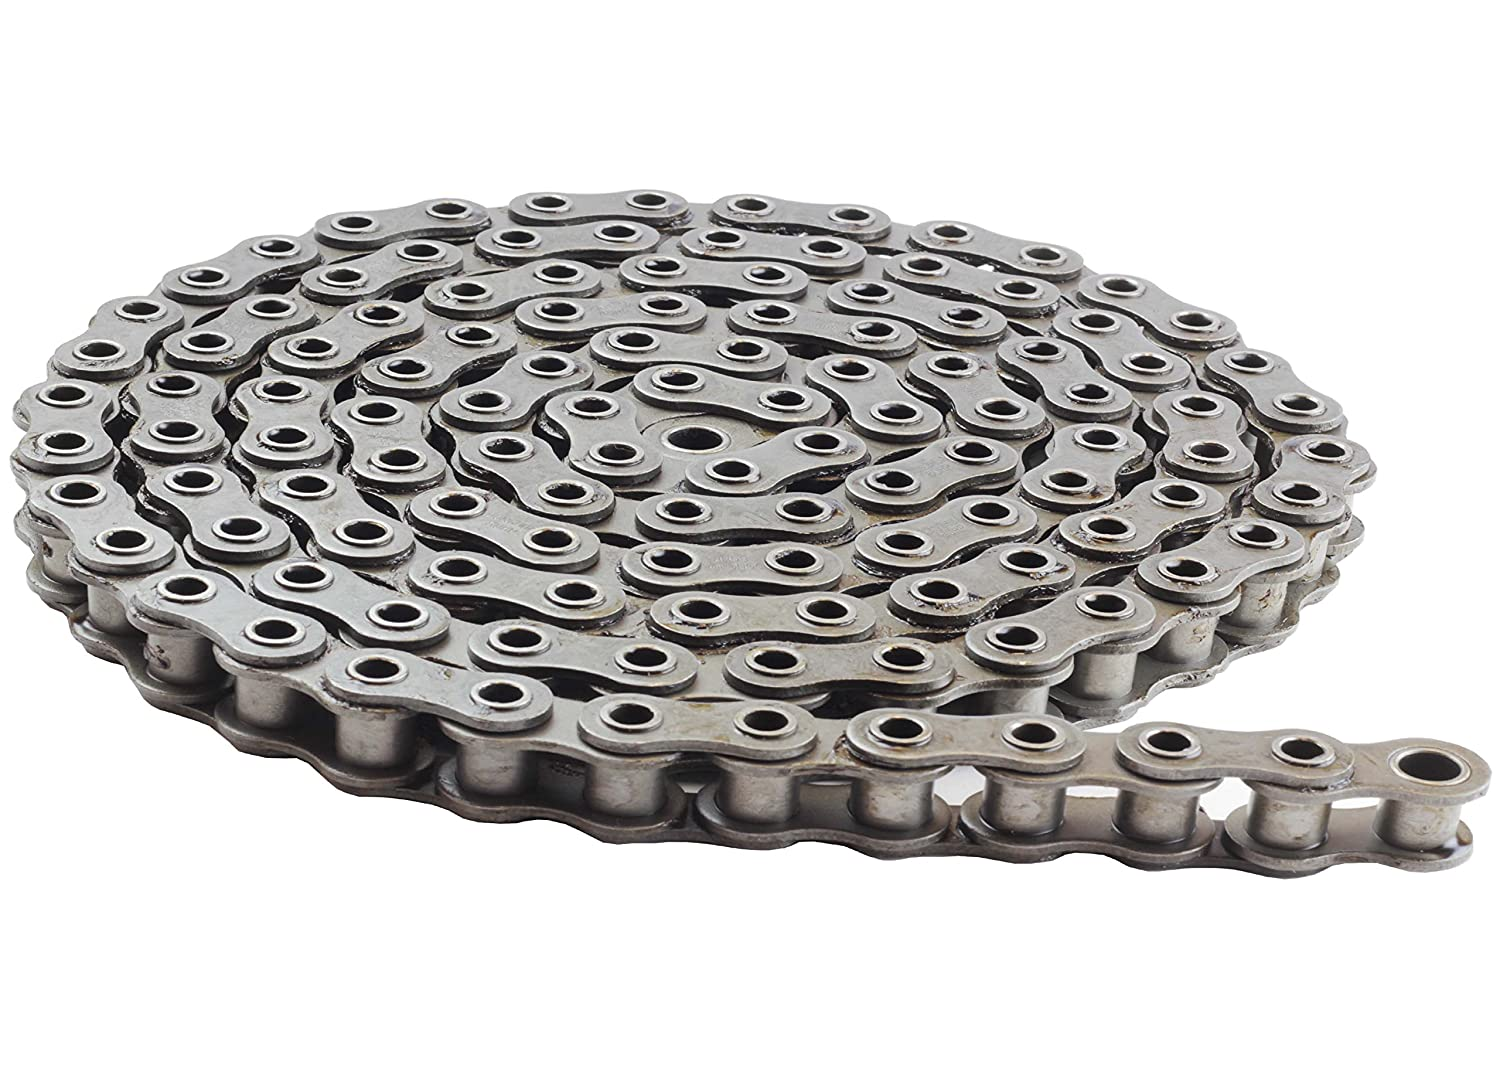 Jeremywell 80HP Hollow Pin Roller Chain with Connectin 10 1 Feet Sales of SALE NEW before selling items from new works